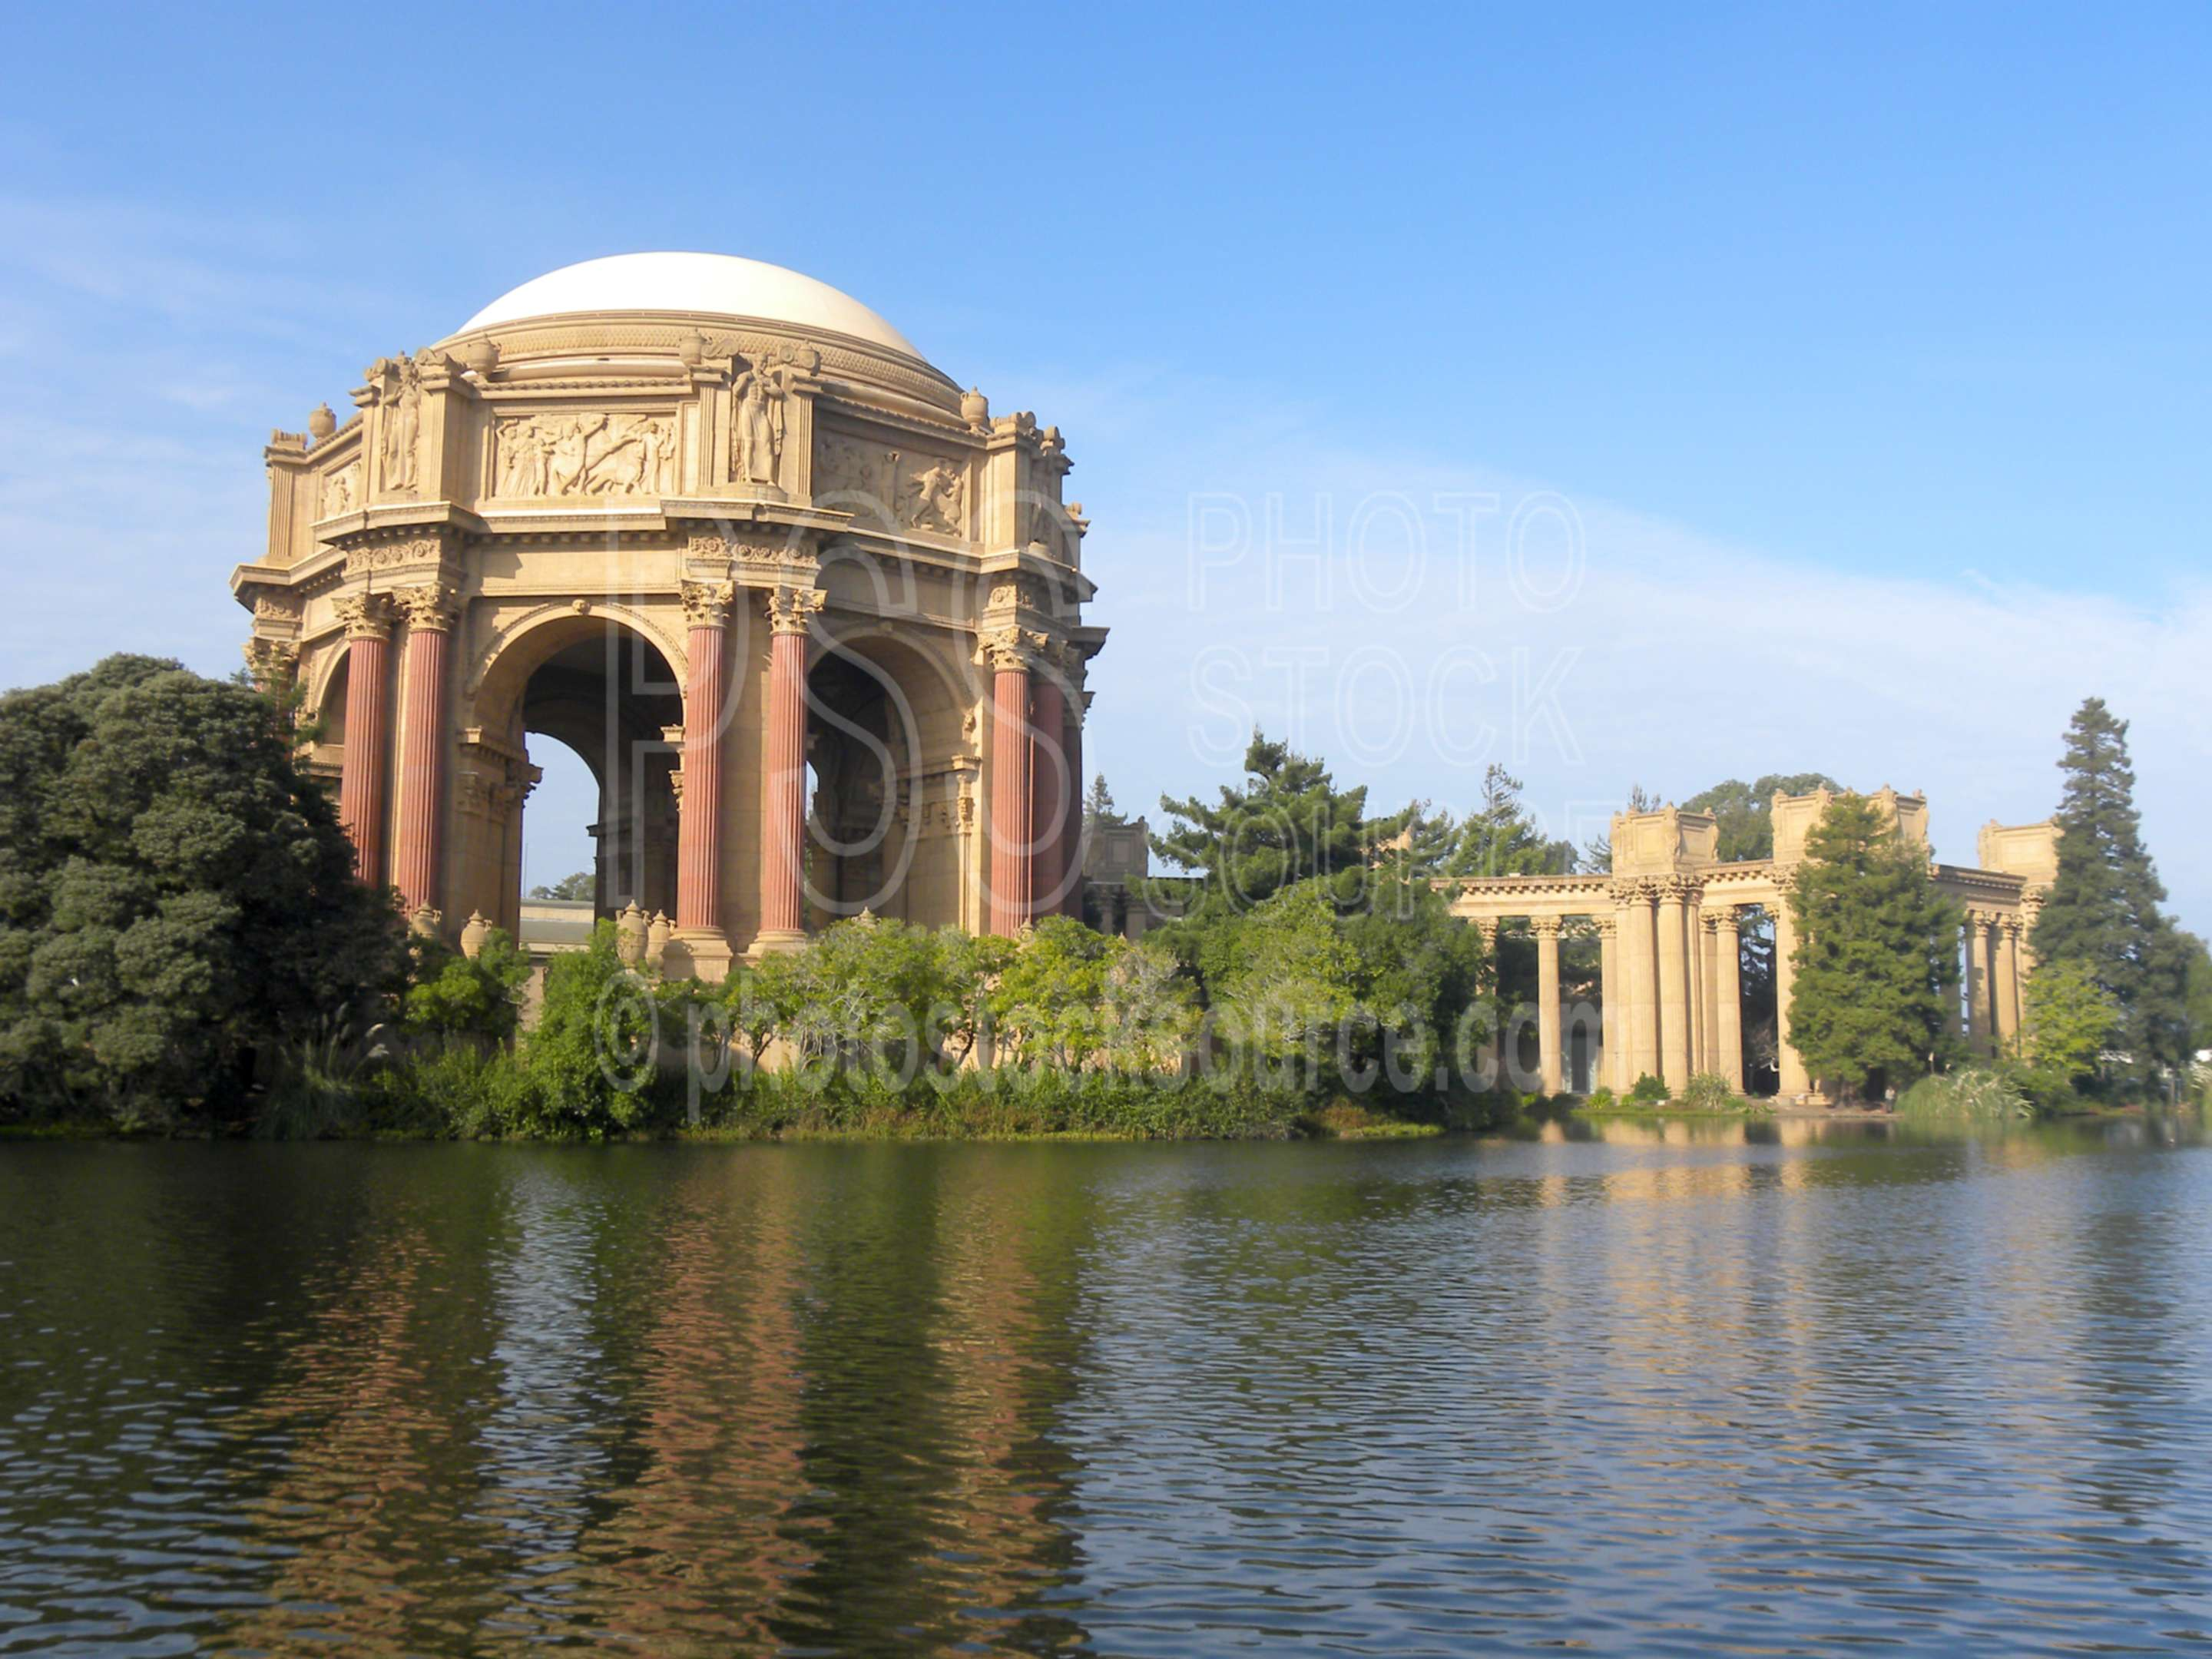 Palace of Fine Arts,landmark,greek,park,pond,lake,structure